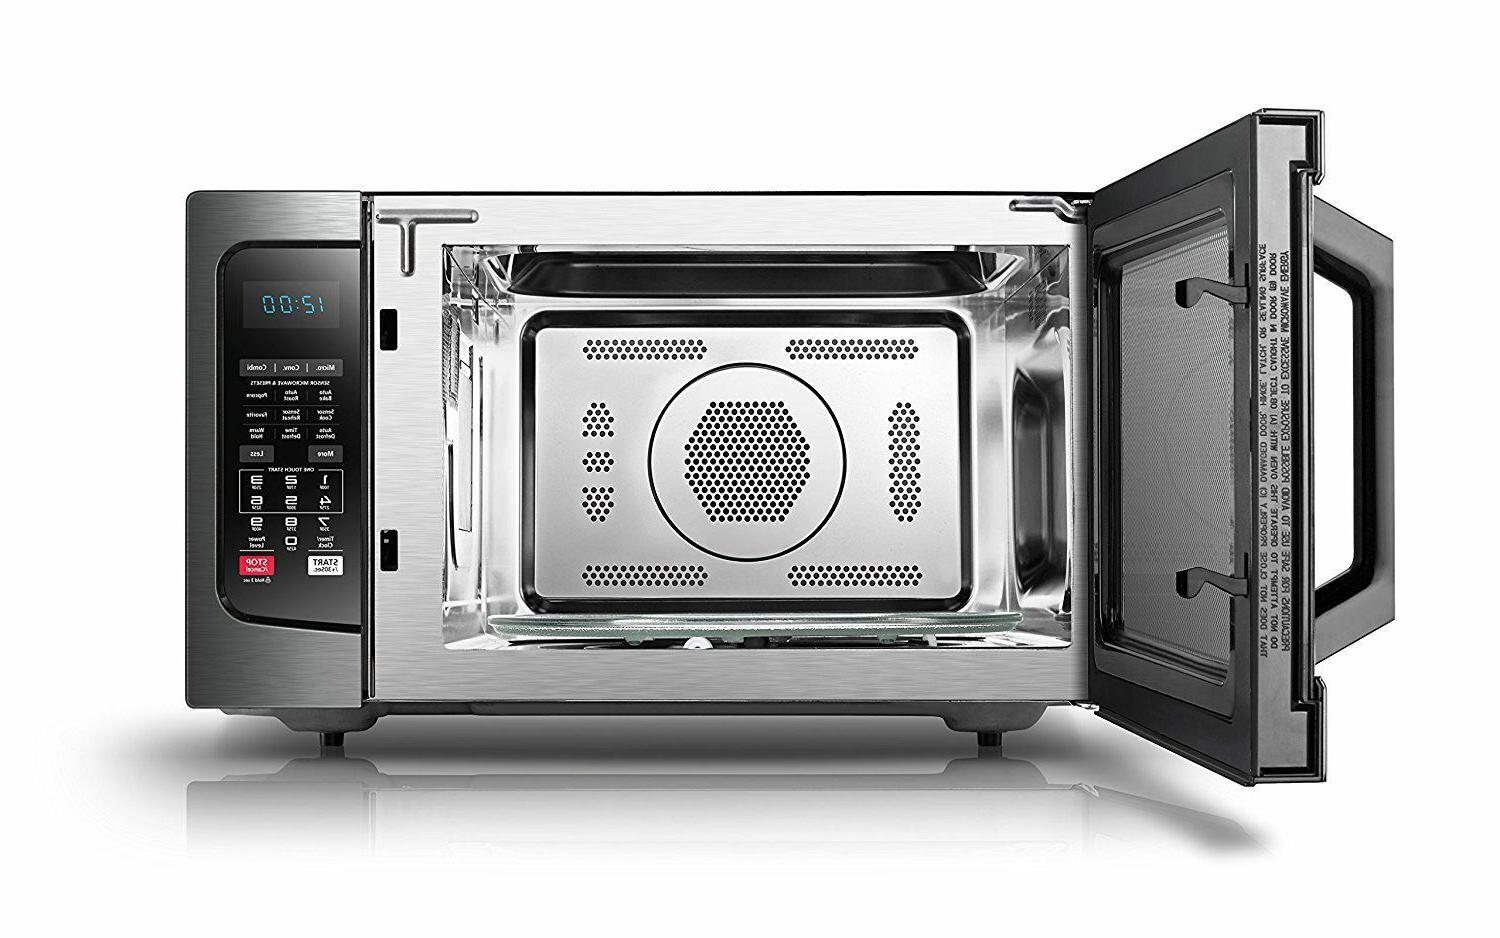 Combination Convection Microwave Stainless Steel Smart LED Dorm